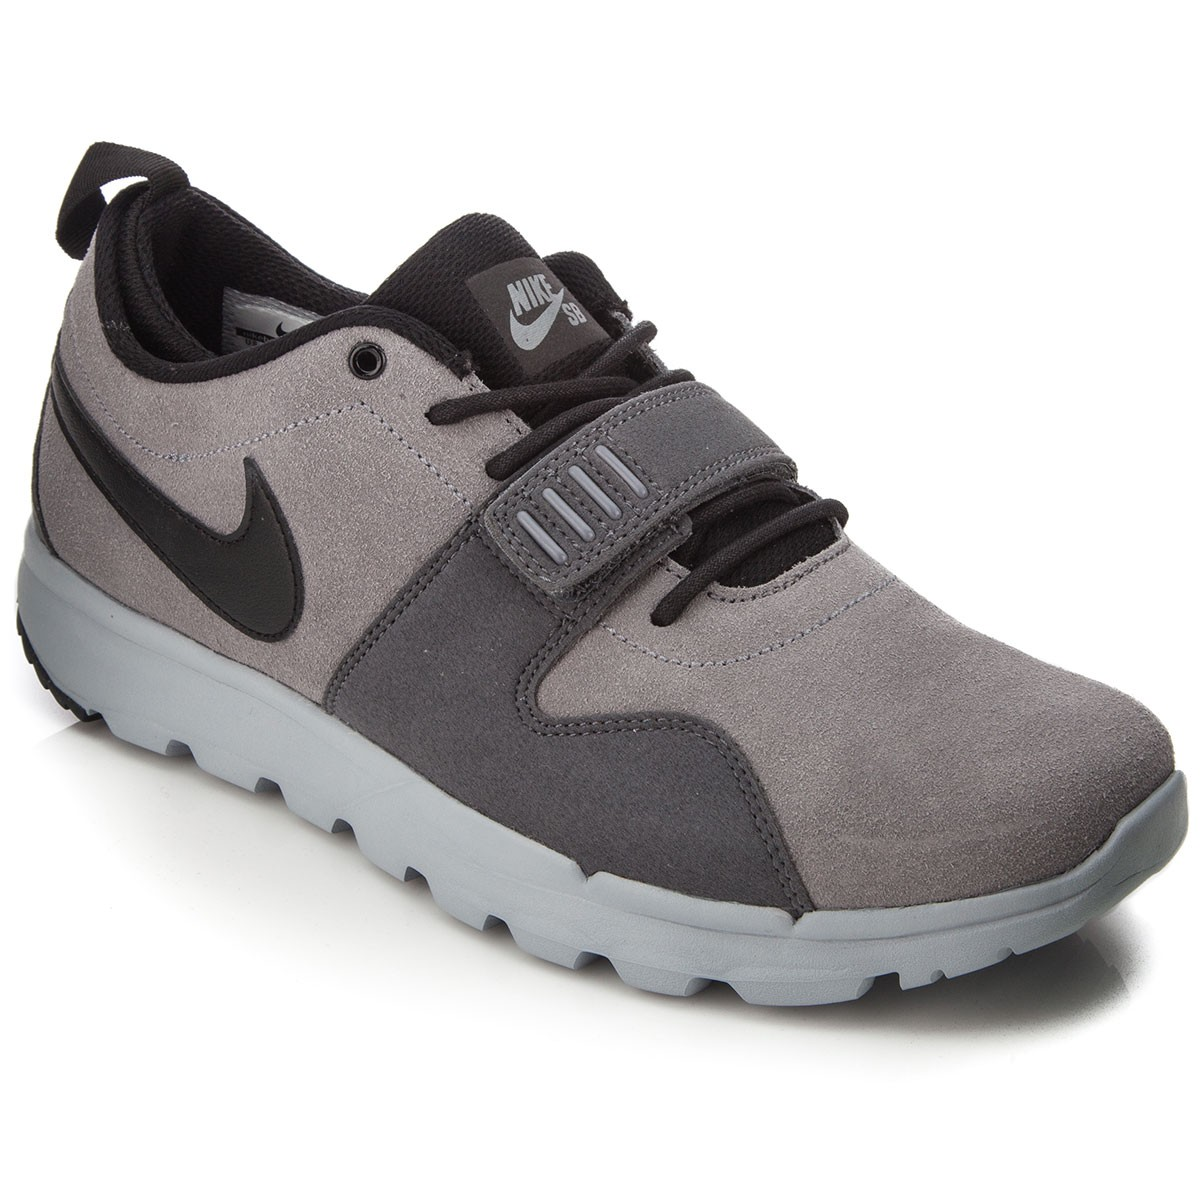 finest selection c0a36 afd47 Nike SB Trainerendor L Shoes - Cool Grey Wolf Grey Black - 6.0